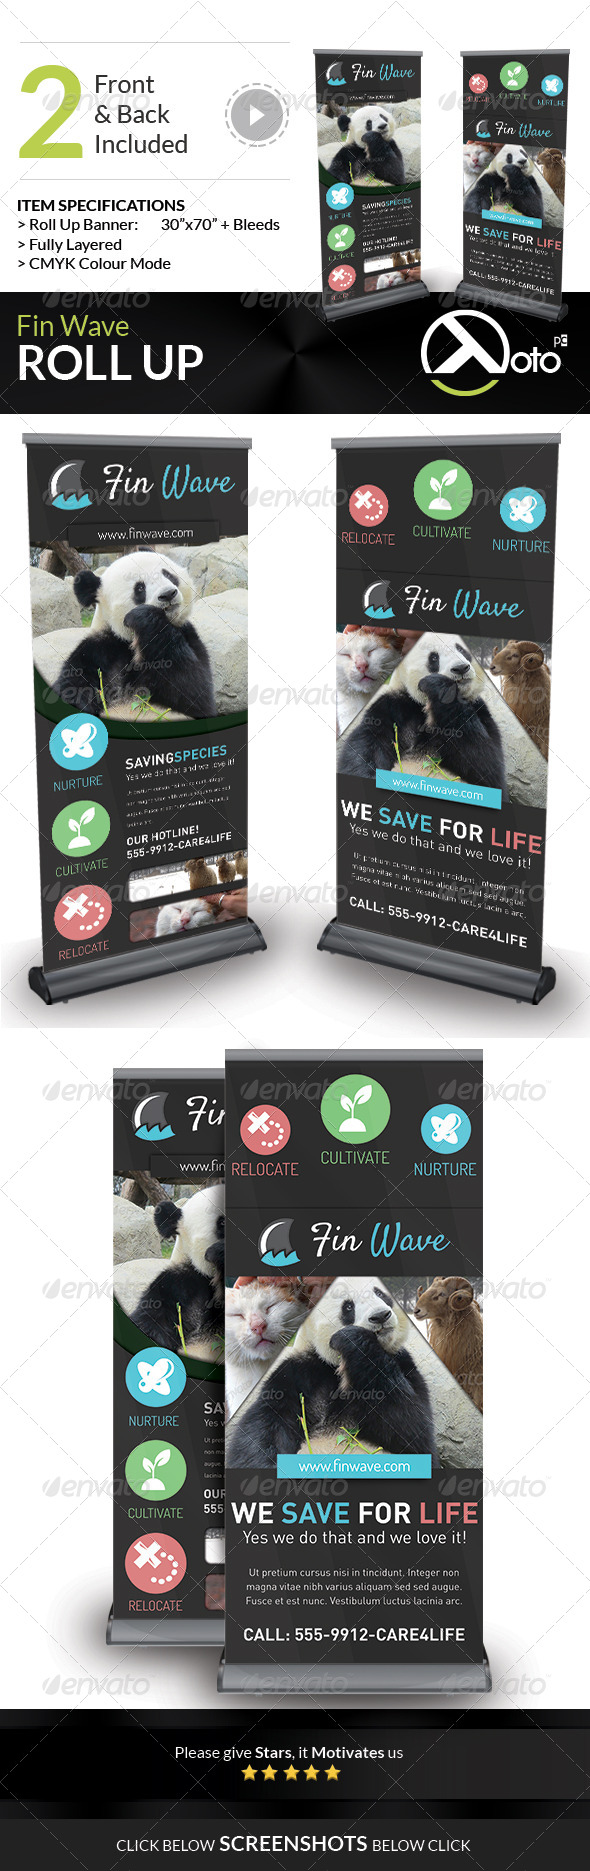 GraphicRiver Fin Wave Wildlife Rescue Roll Up Banners 7518920